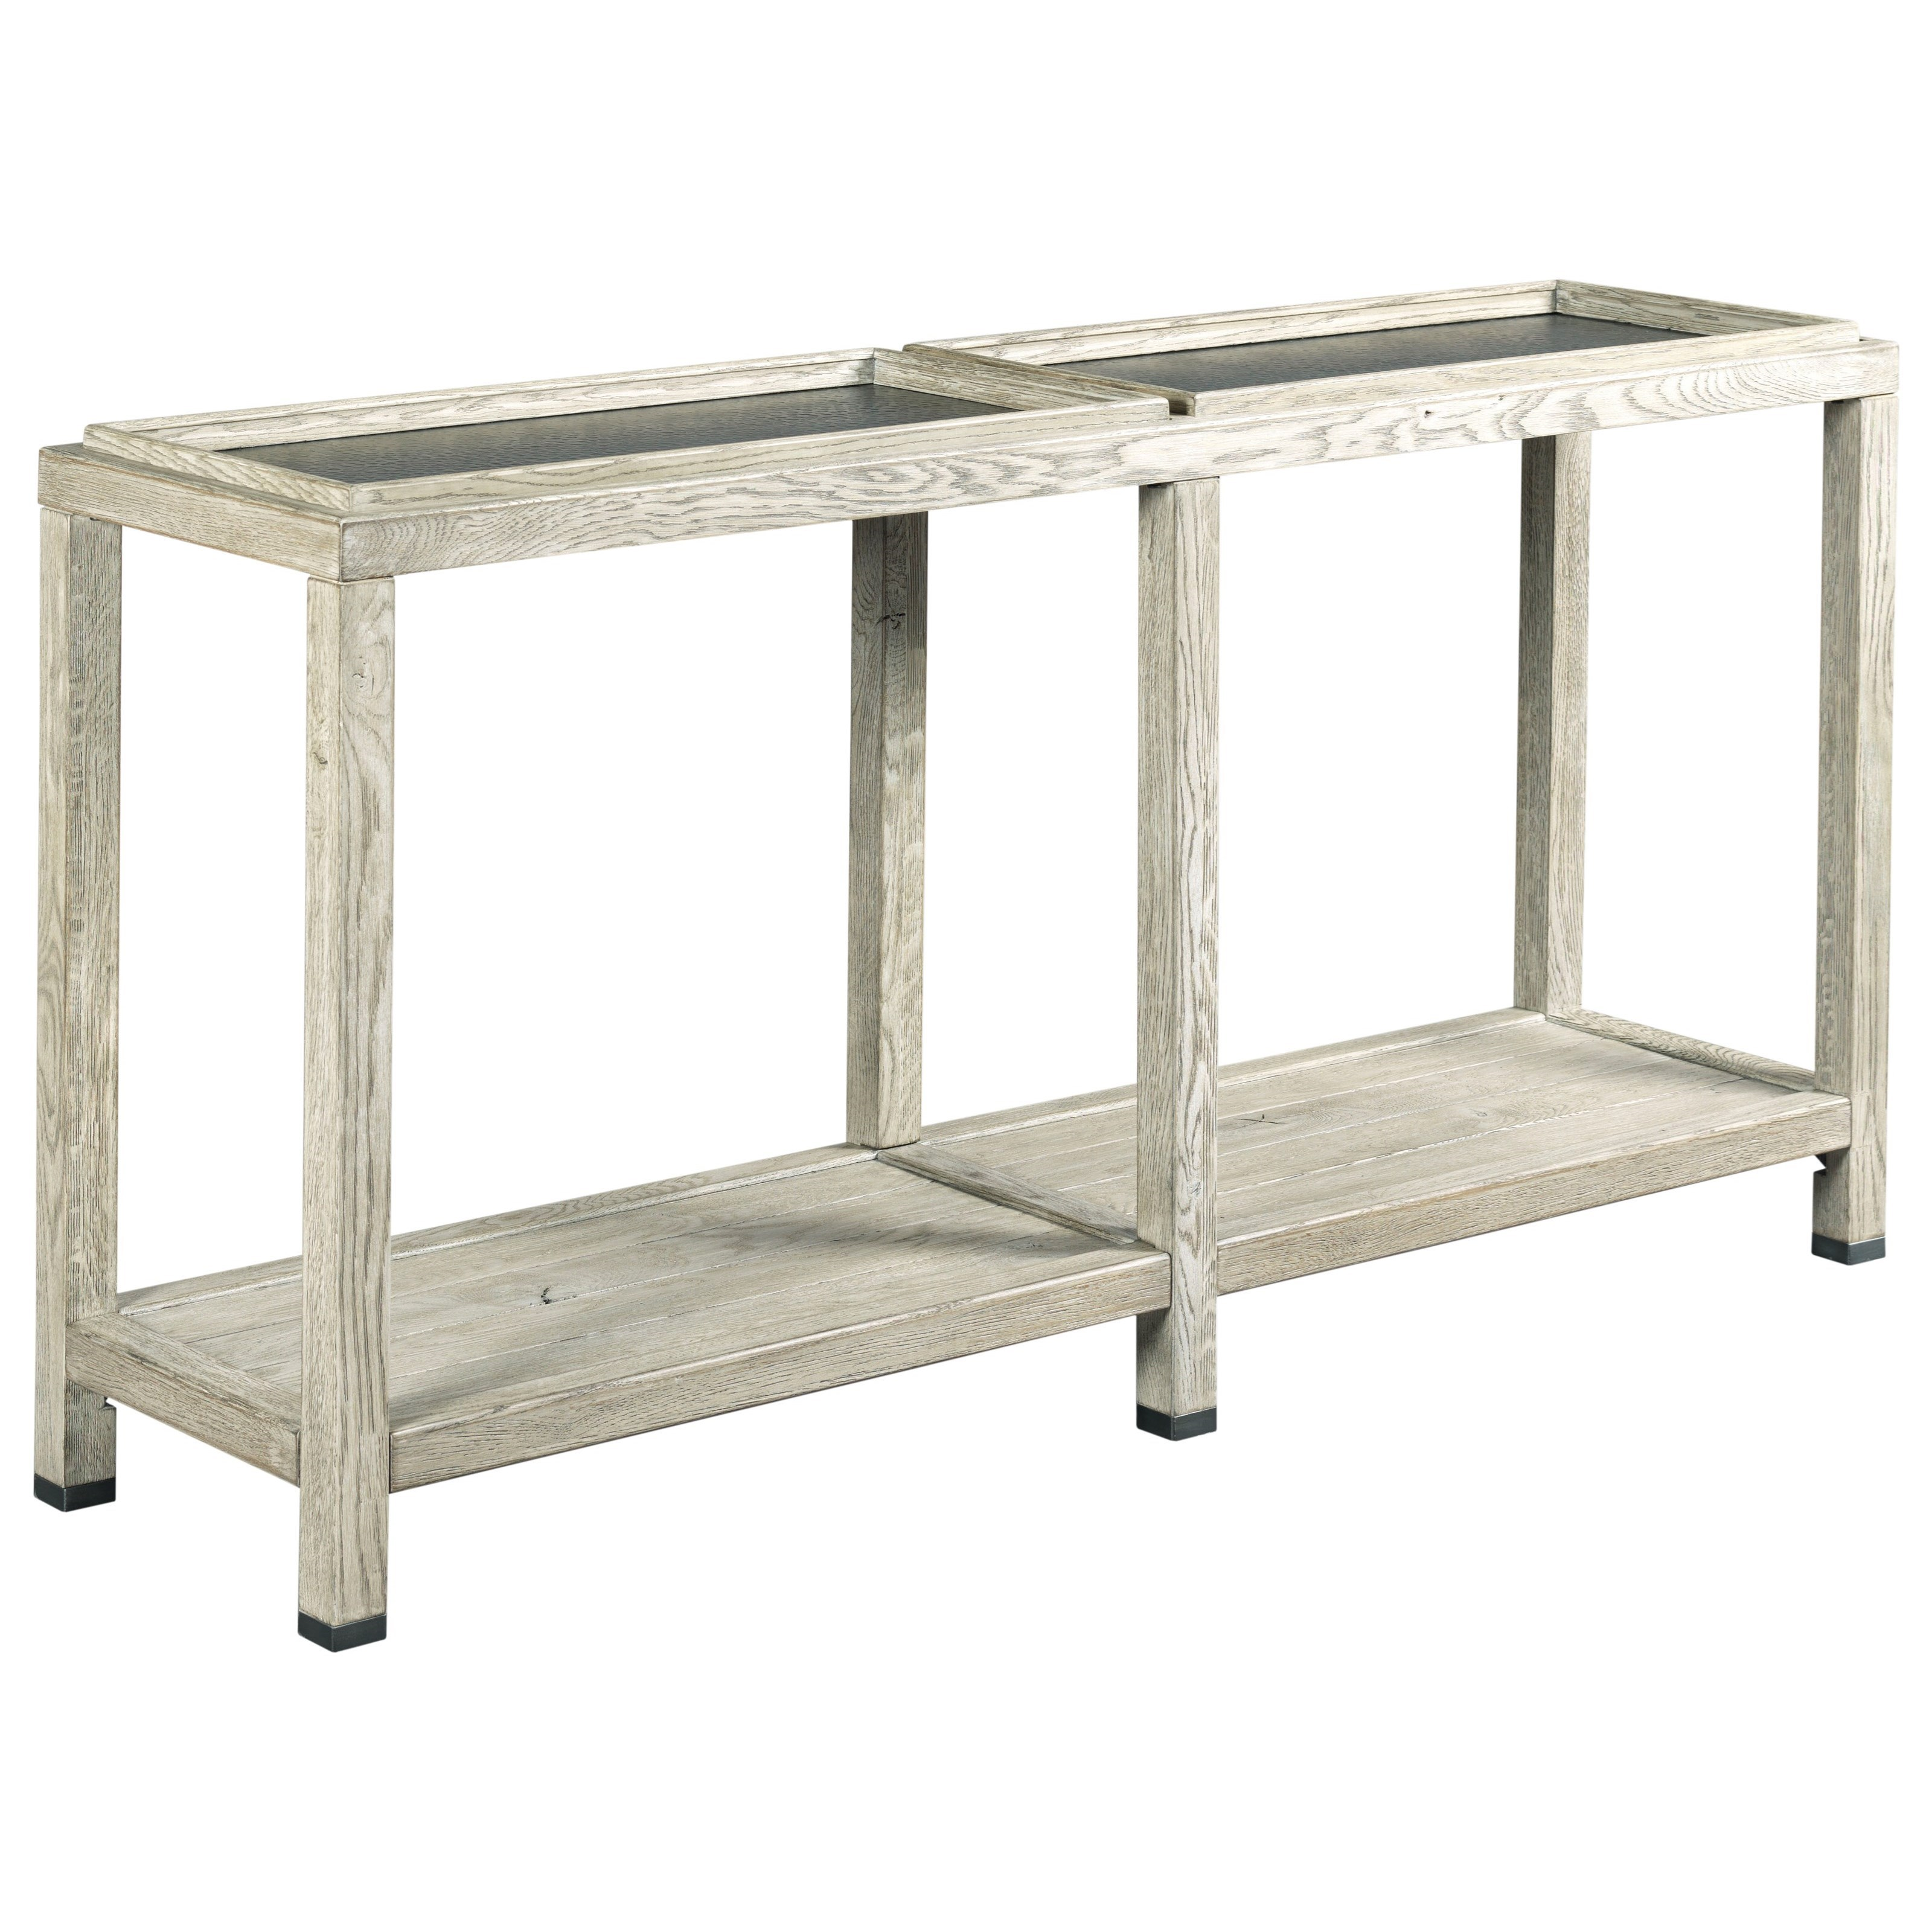 Kincaid Furniture Trails Elements Console Table With Two Removable Trays Godby Home Furnishings Sofa Tables Consoles